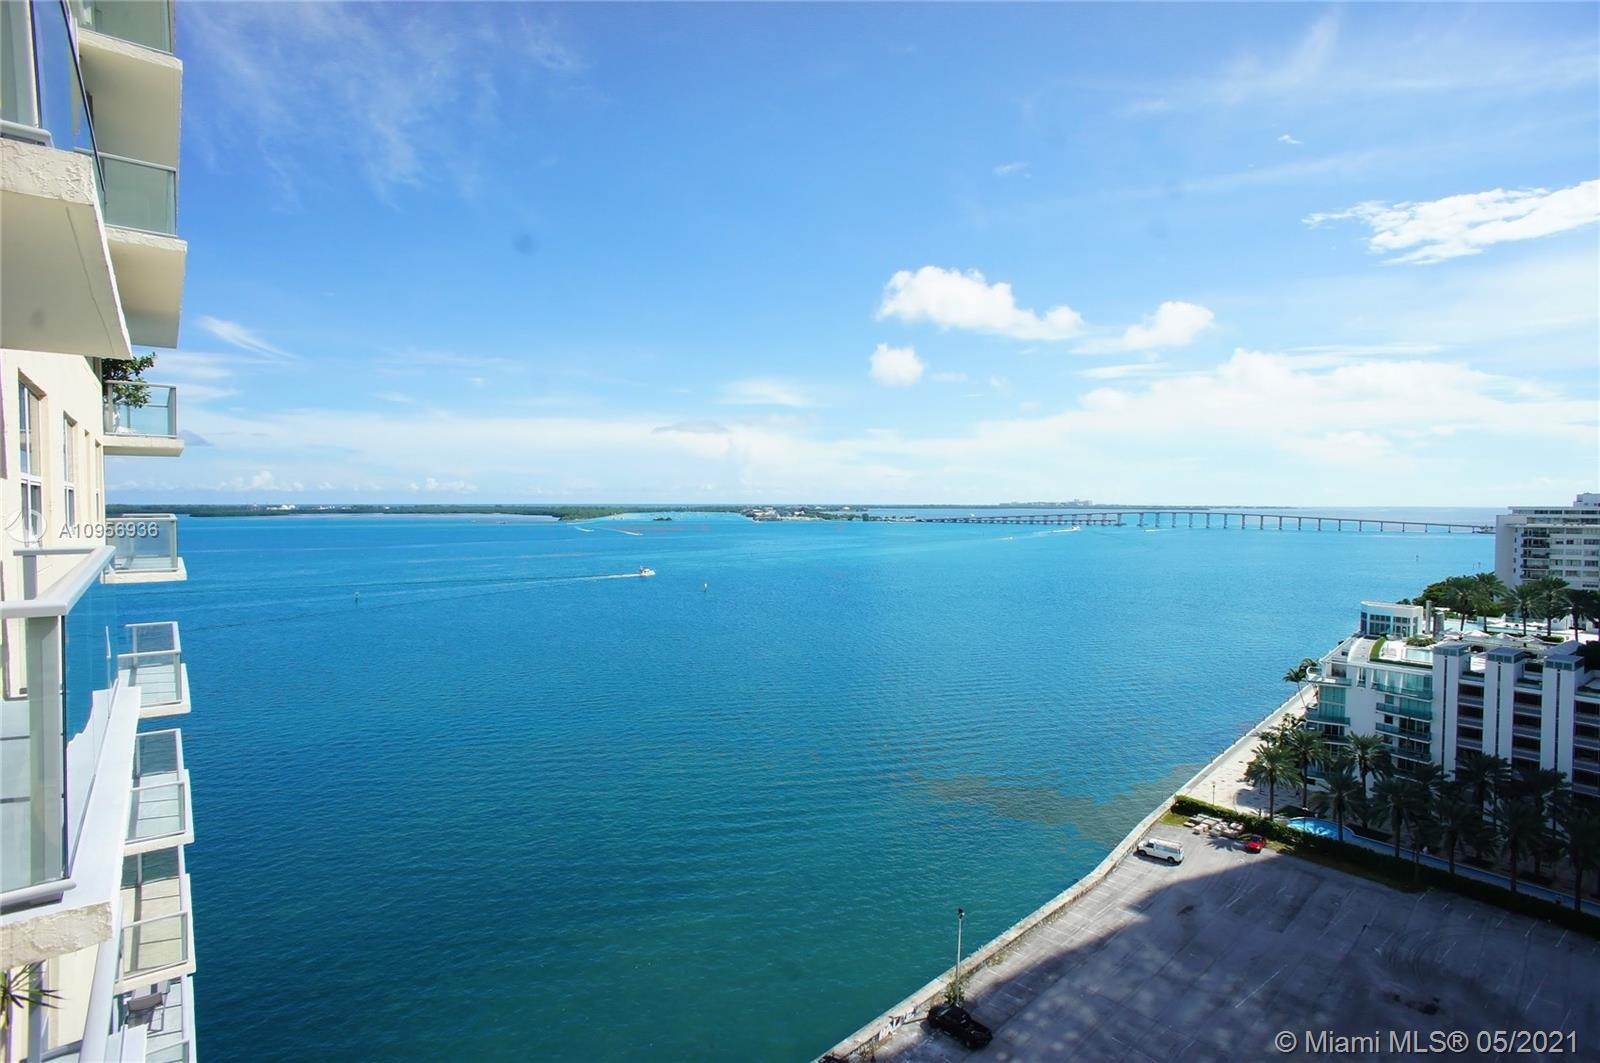 Amazing Water Views to the Ocean, Biscayne Bay, and the city. Perfect home and a perfect investment. Airbnb approved 12 Leases per year allowed.  Dark wood floors. Brand new Stainless Steel Appliances, upgraded bathroom, brand new closet cabinetry. Amenities: Large Pool by the Bay, tennis court, covered parking, fitness center, hot tub, sauna, restaurant on-site, convenience store, Racquetball courts, waterway, and much more. Extra storage is available. Easy access to I-95. downtown, Key Biscayne, Airport, and Miami Beach. (VIDEO AVAILABLE FOR PREVIEWING)